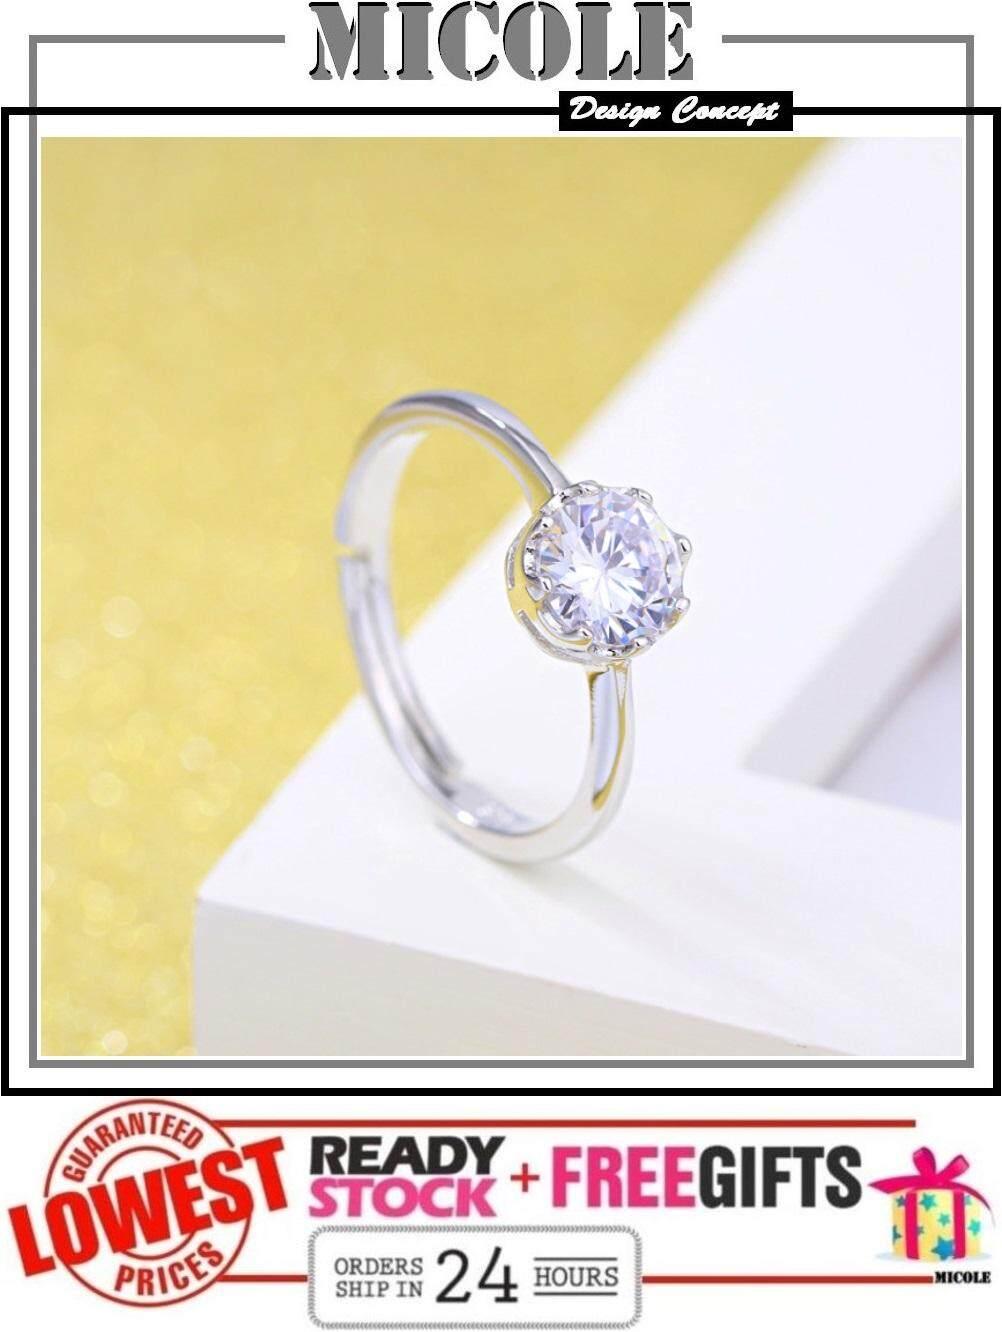 MICOLE RF3005 White Gold Plated Adjustable Ring Cincin